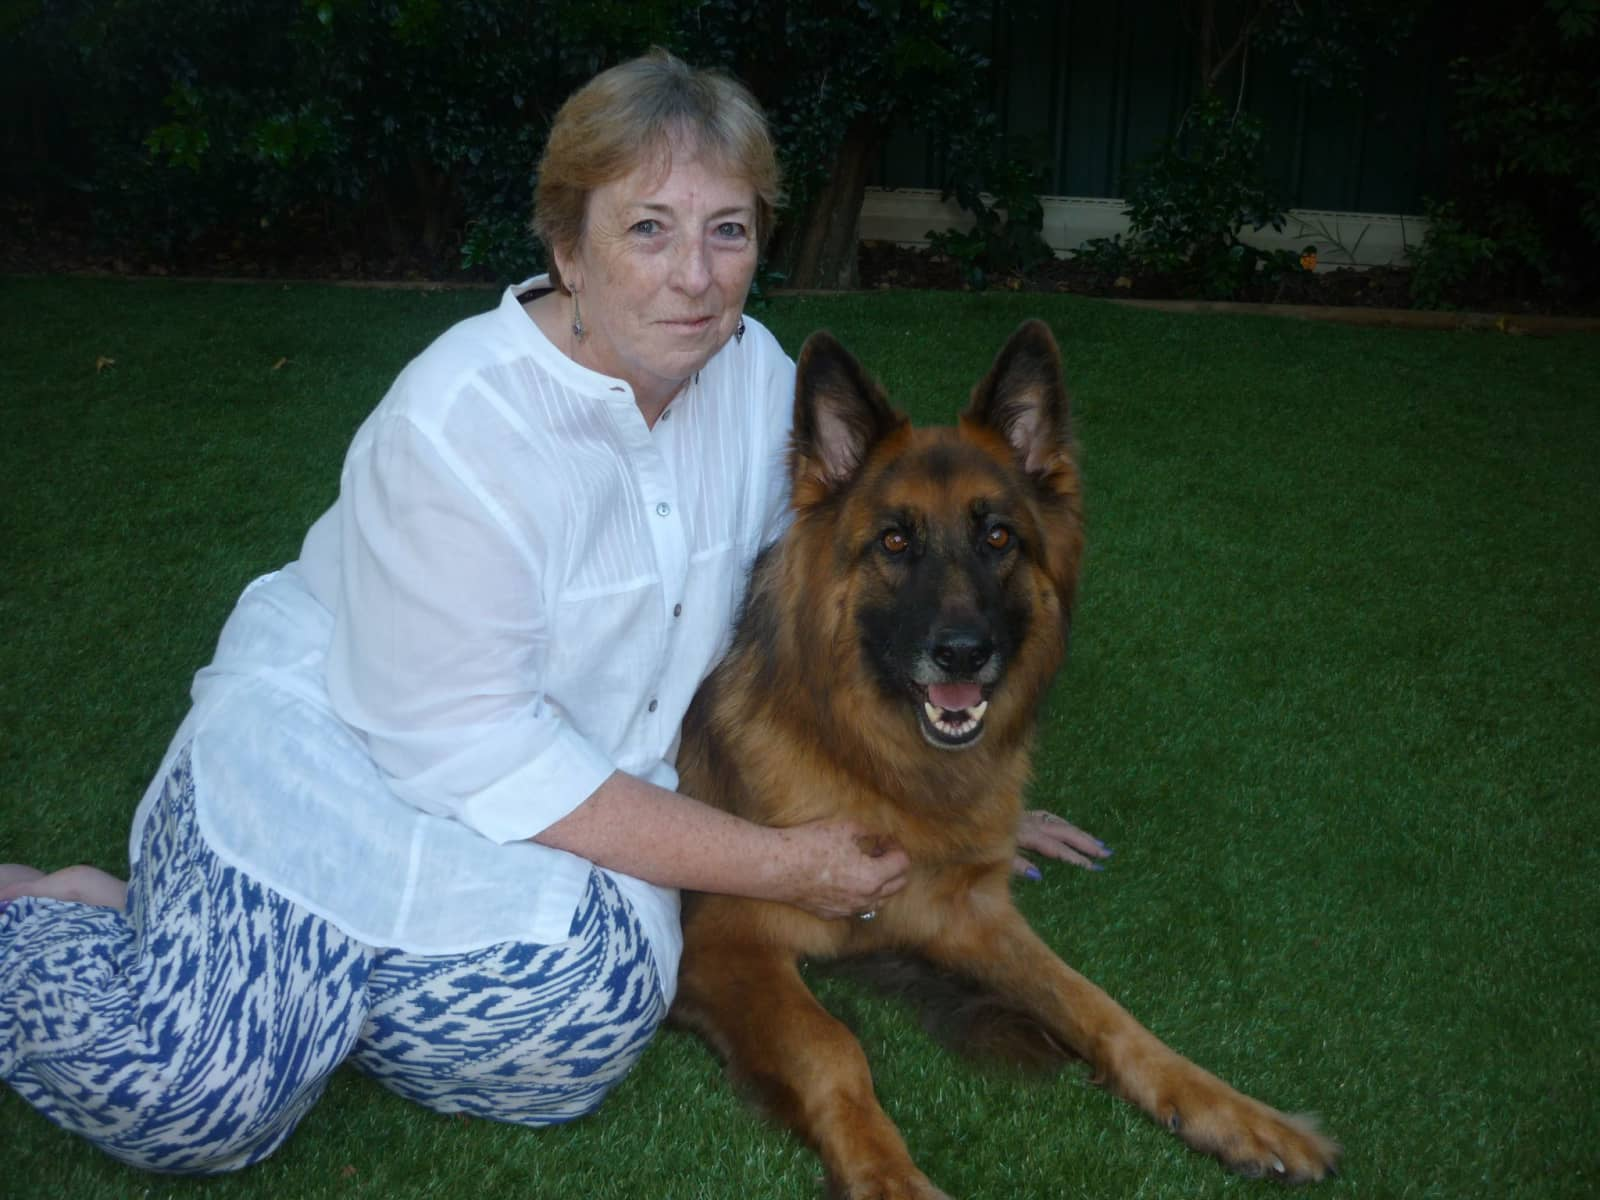 Annette from Sydney, New South Wales, Australia